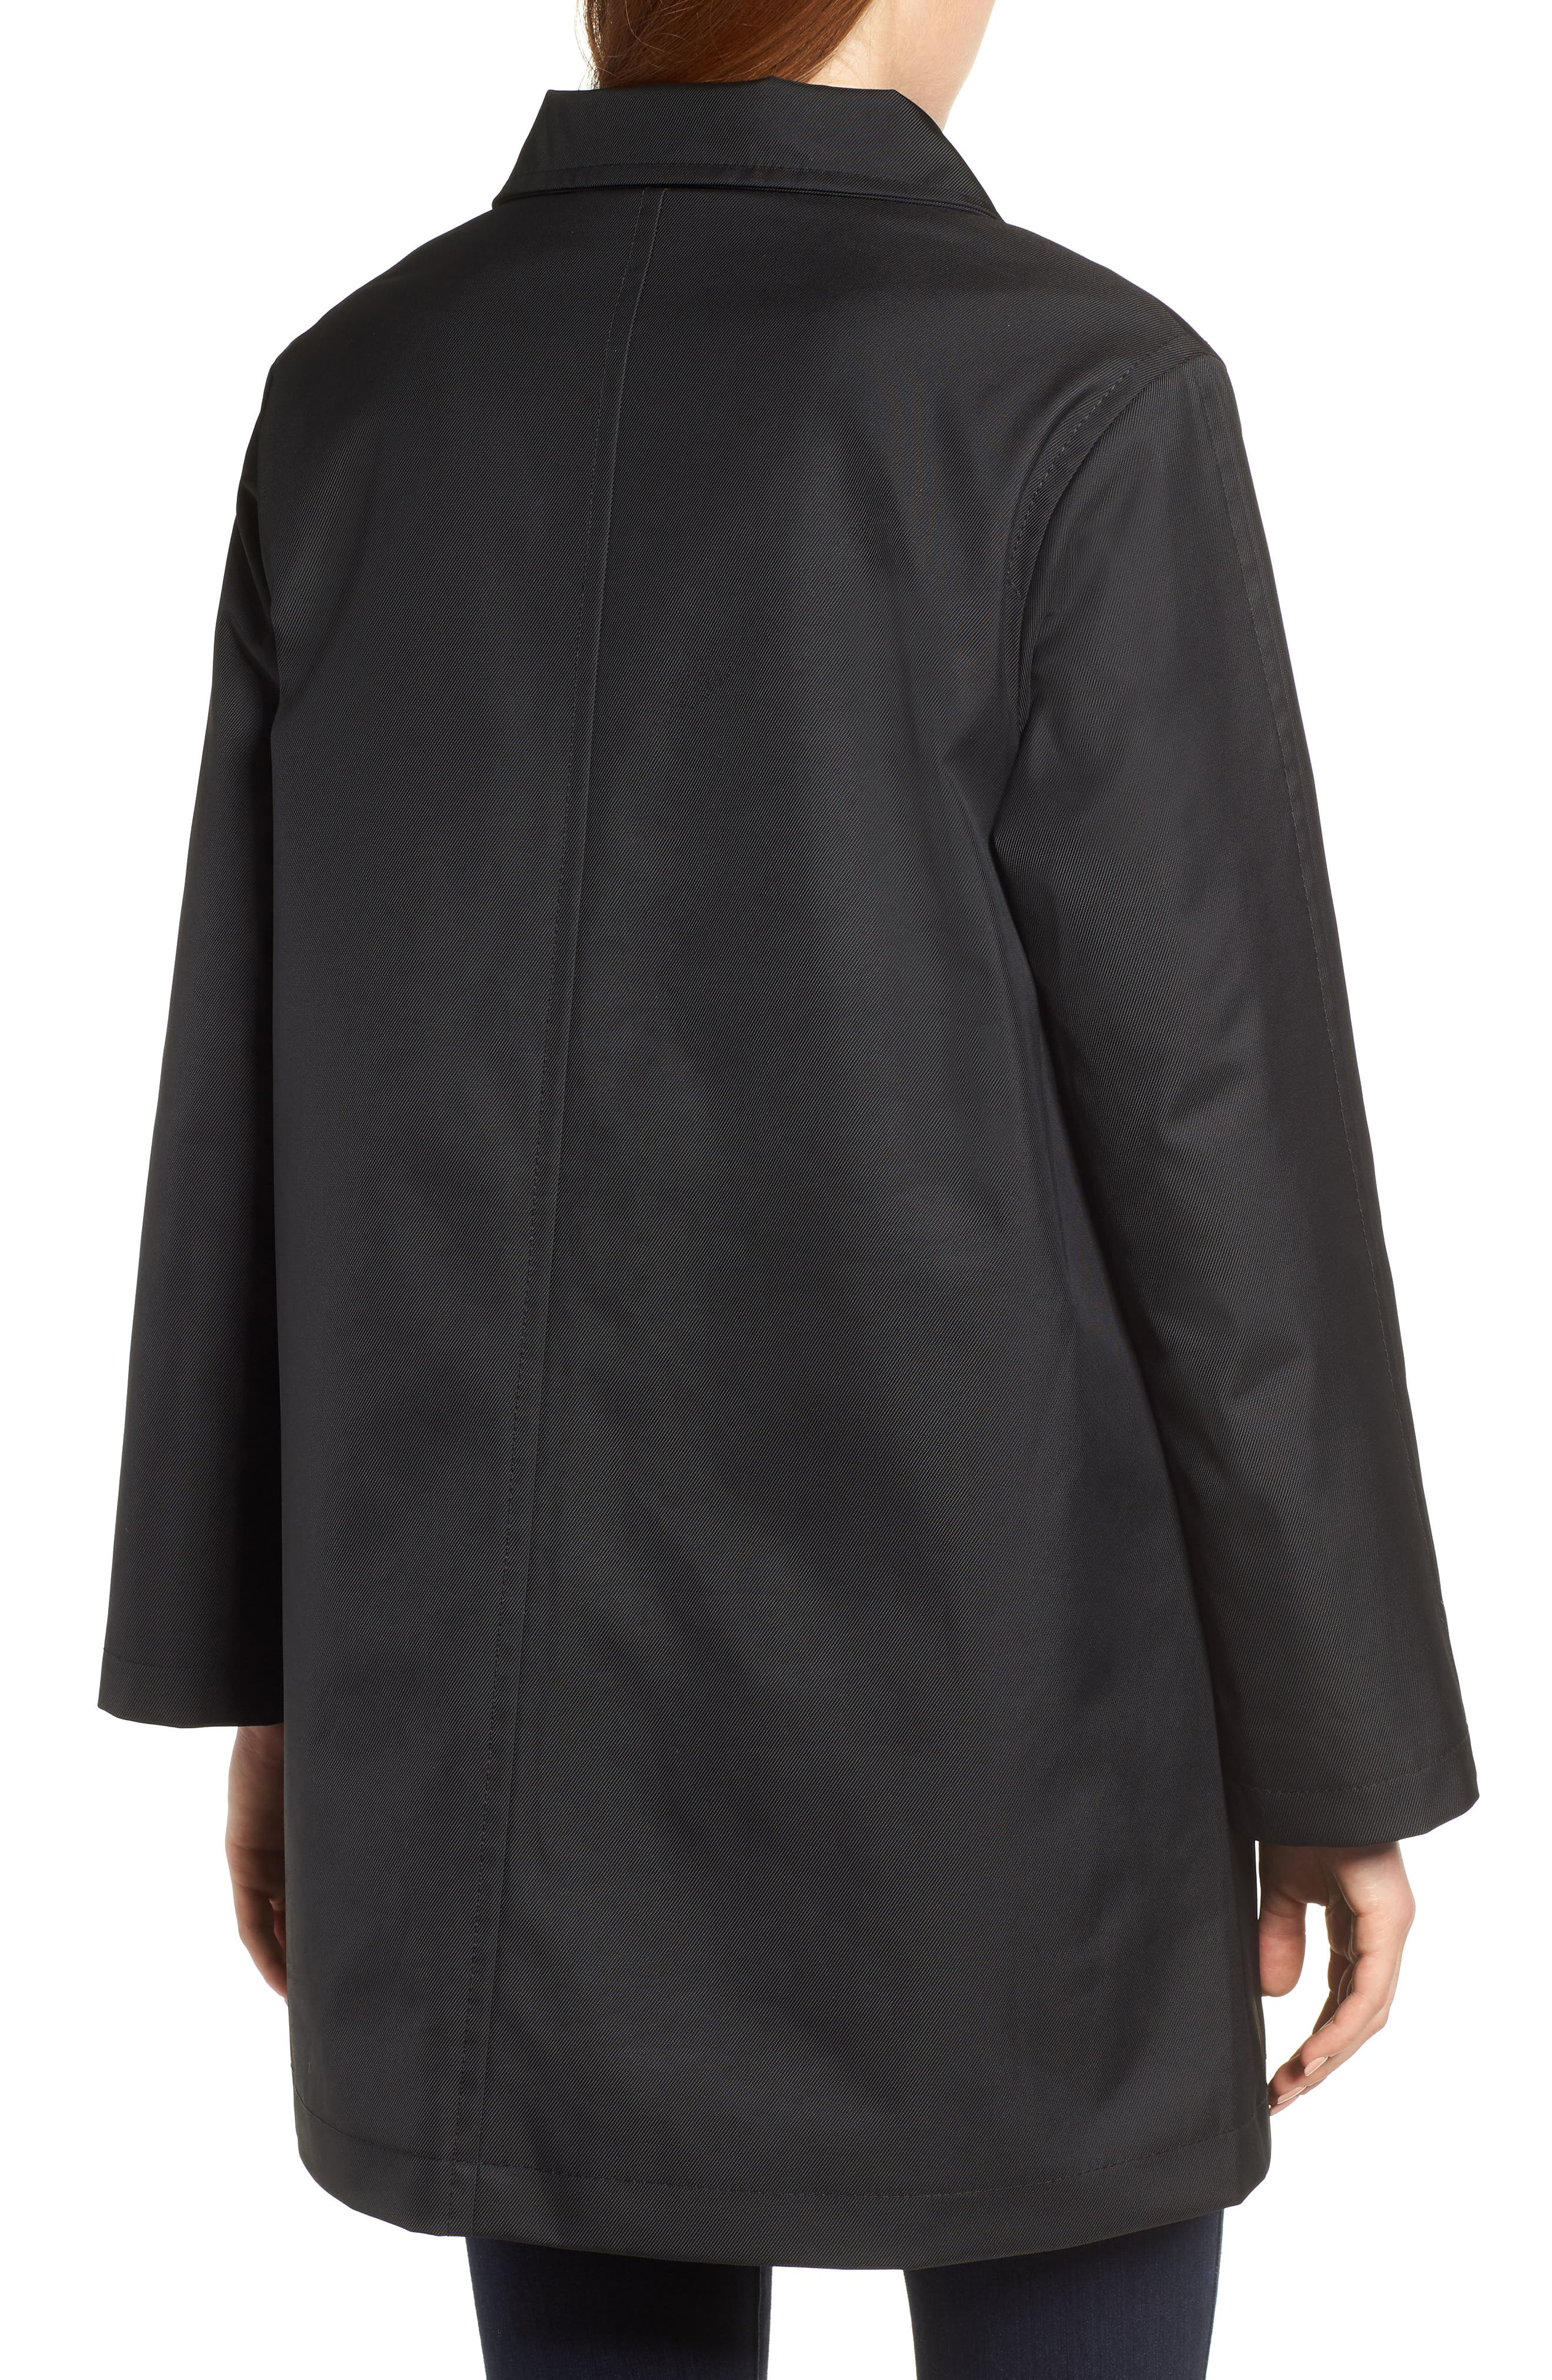 Tenley Asymmetrical Collar Coat,                             Alternate thumbnail 2, color,                             BLACK